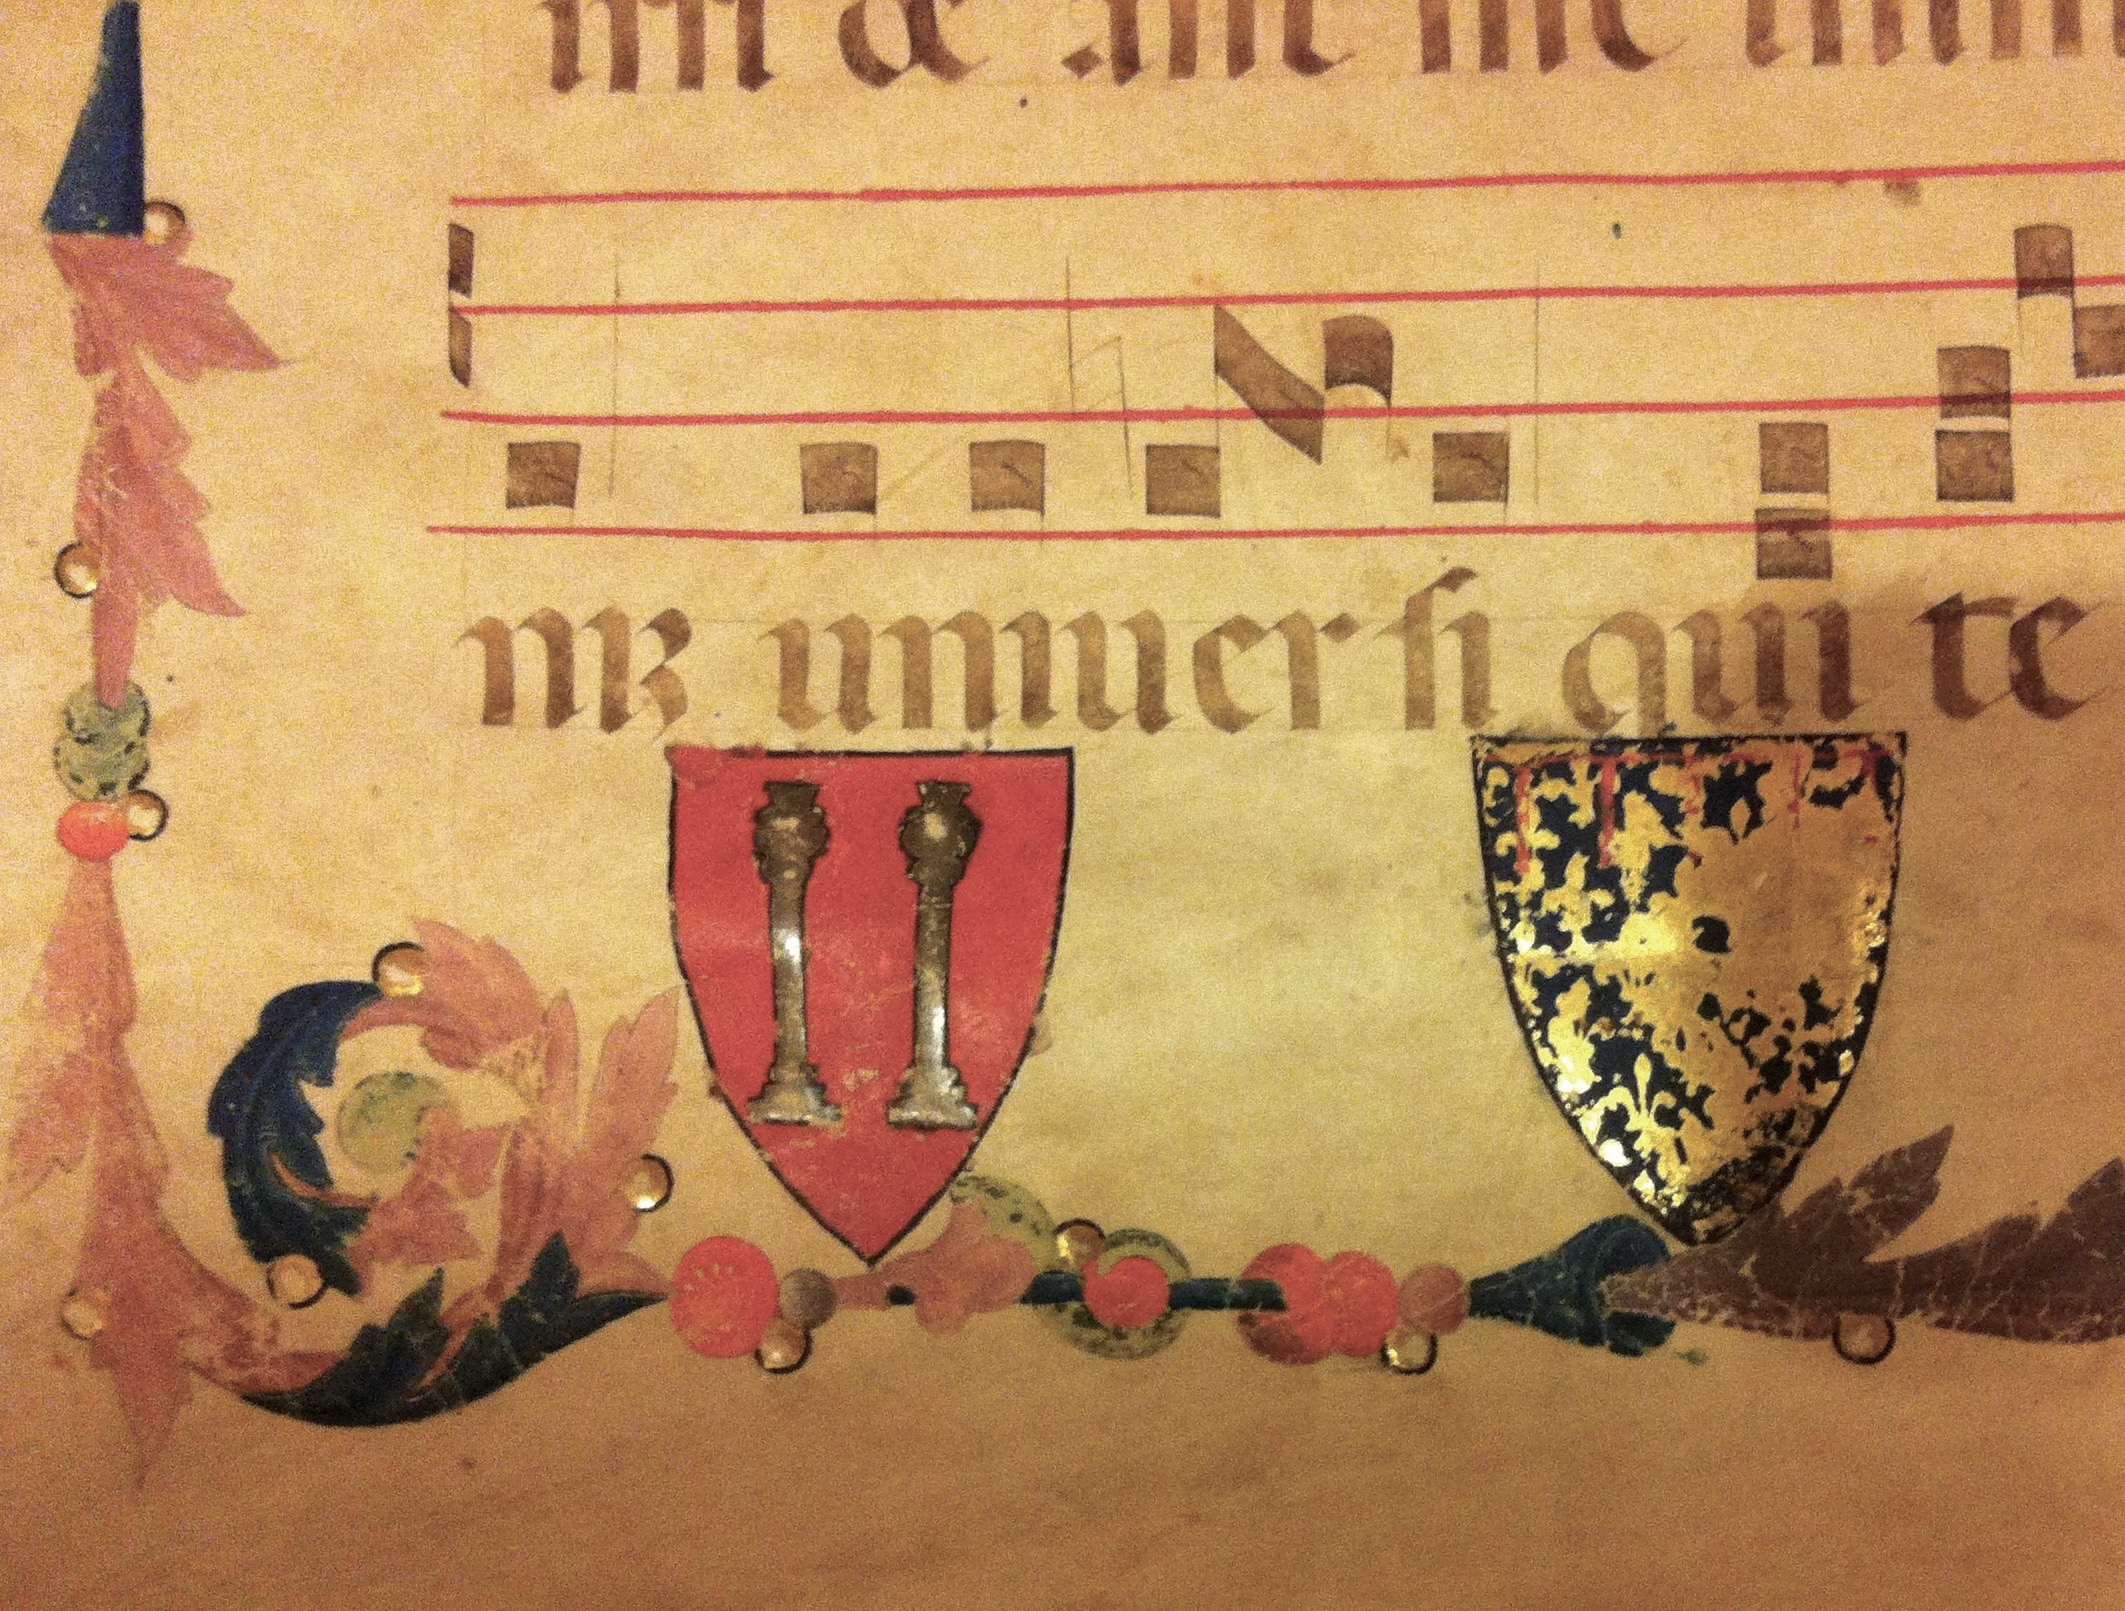 Coats of Arms, attributed to the Master of the Antiphonary of San Giovanni Fuorcivitas, about 1345-50. Tempera colors and gold leaf on parchment. Montepulciano, Museo Civico, Ms. H/2, fol. 3v